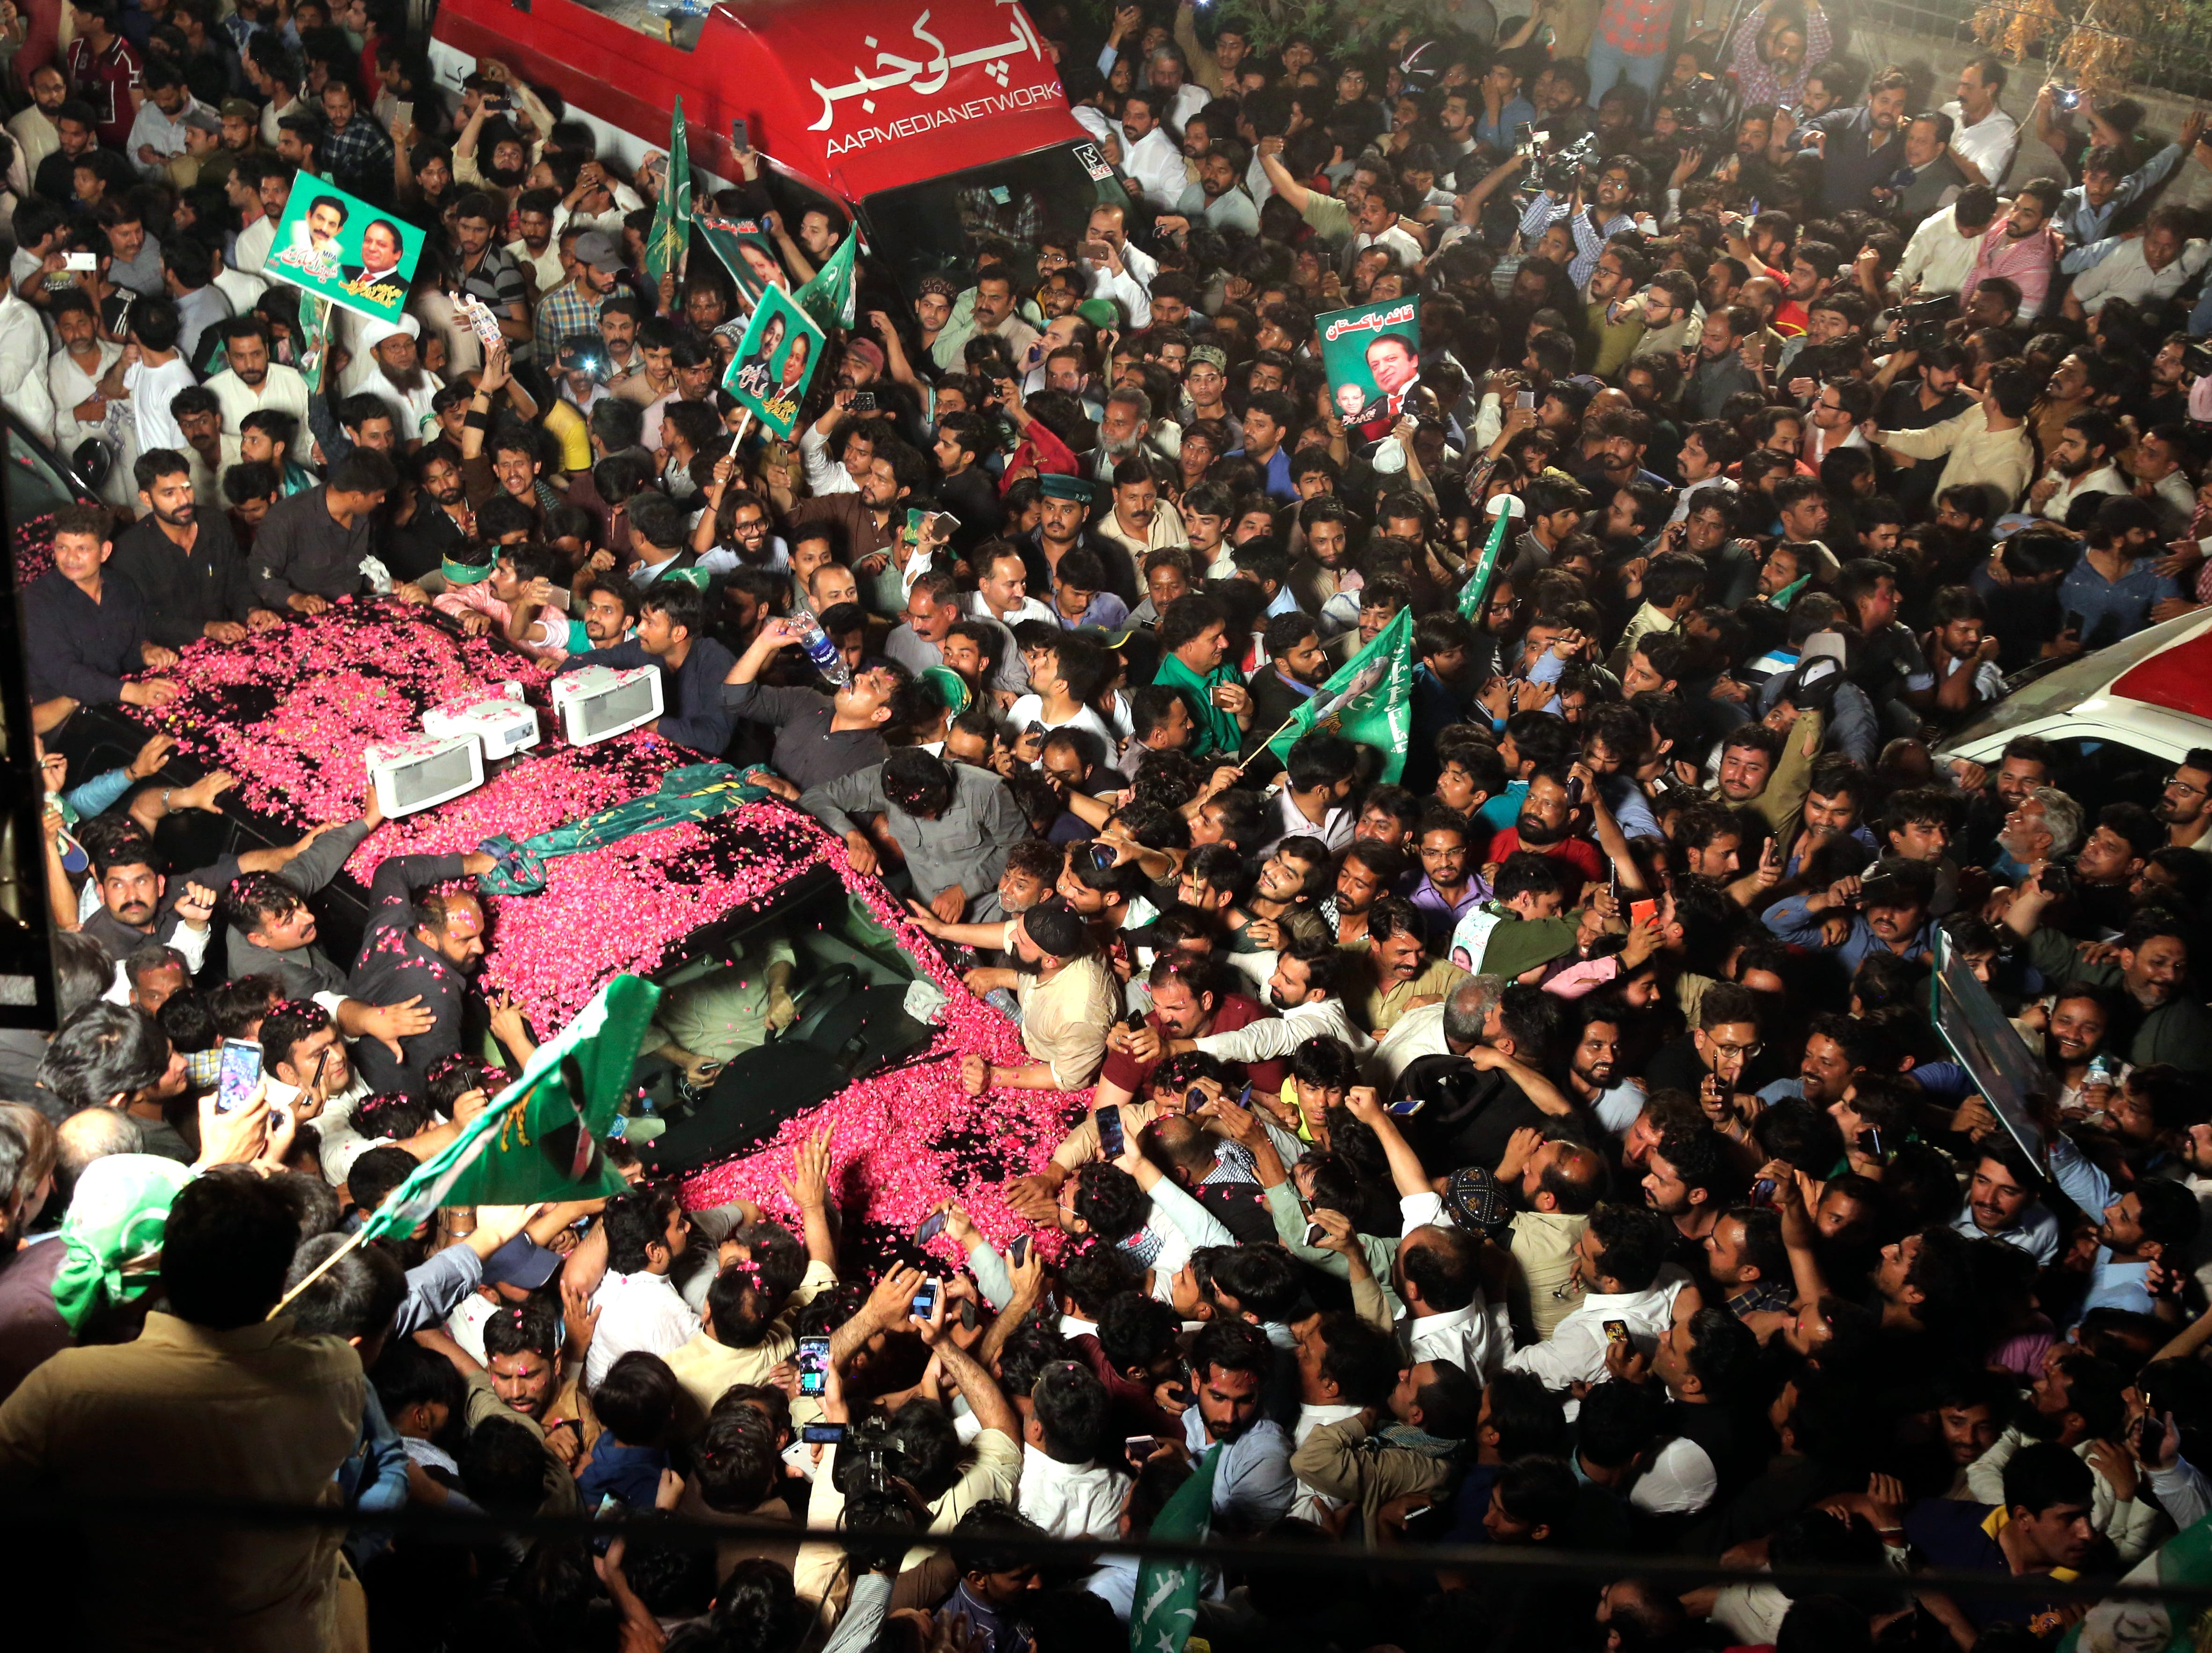 Supporters of Pakistan's former Prime Minister Nawaz Sharif surround his vehicle, on his way to the Kot Lakpat jail in Lahore, Pakistan, Tuesday, May 7, 2019. Sharif returns back to prison after six weeks out on bail to receive medical treatment ended. Sharif was ousted from office by the Supreme Court in 2017 because of the corruption charges against him.